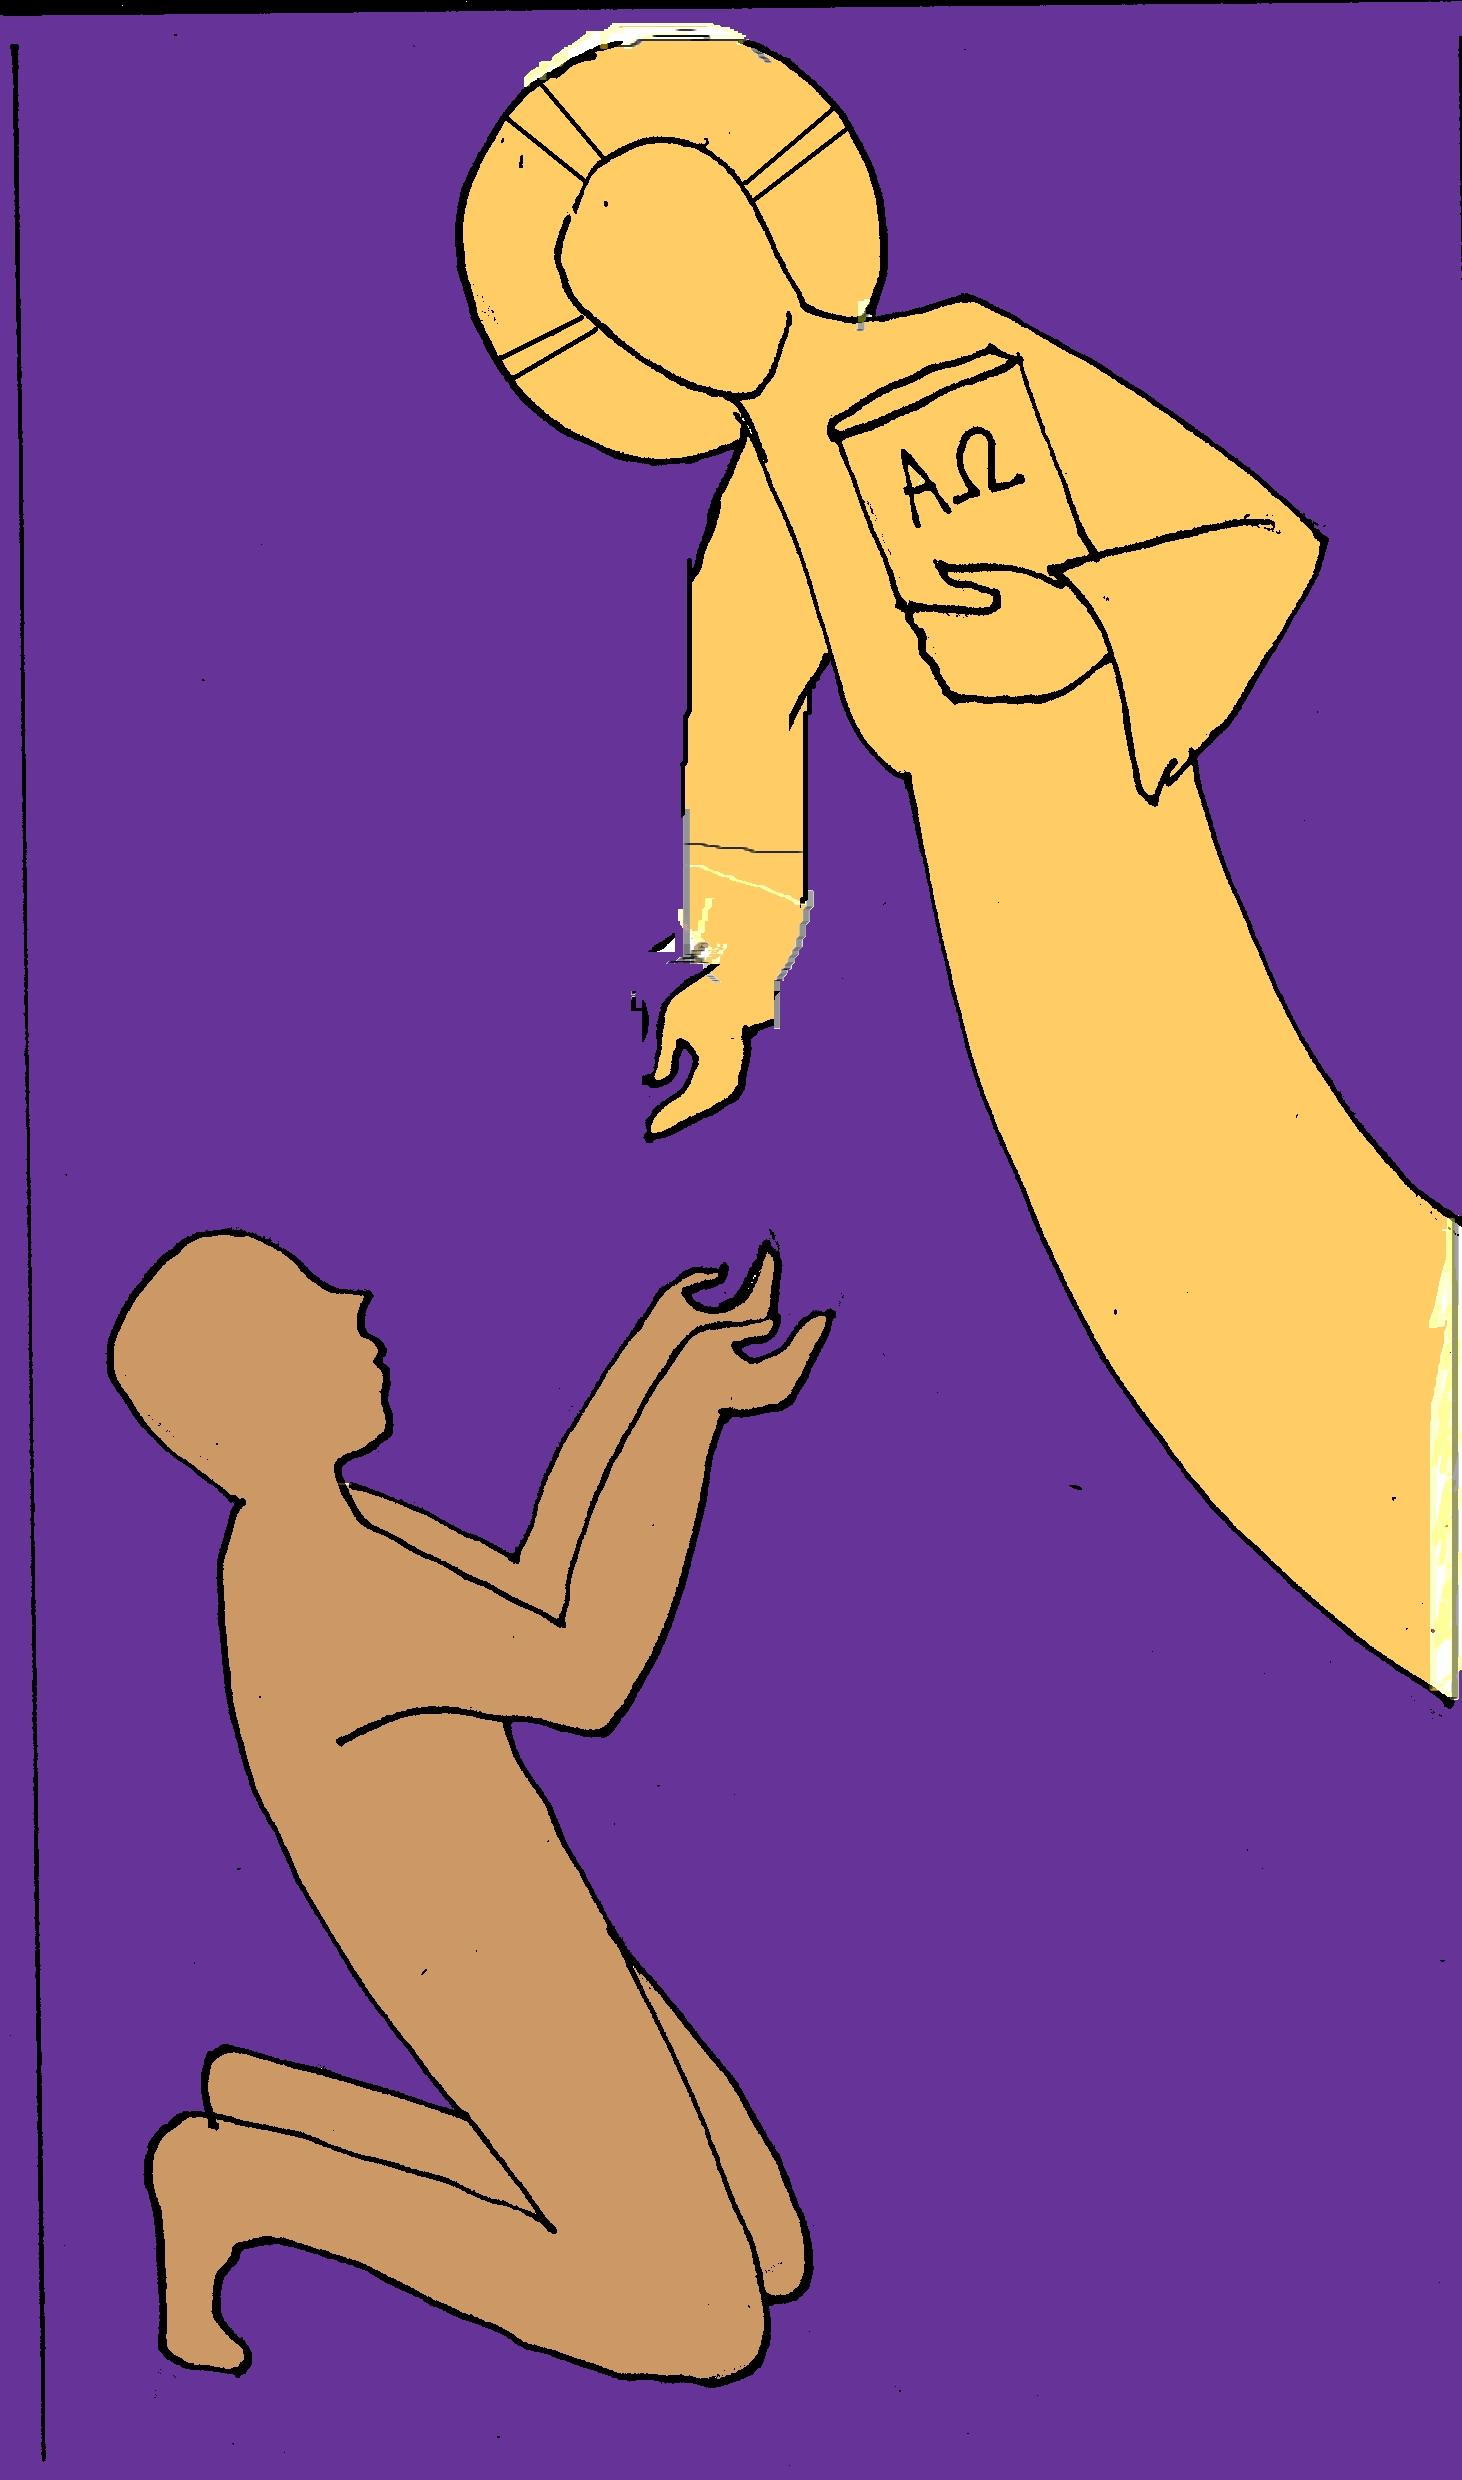 The Lord, in gold, reaches down to a soul, in bronze, on a violet background.